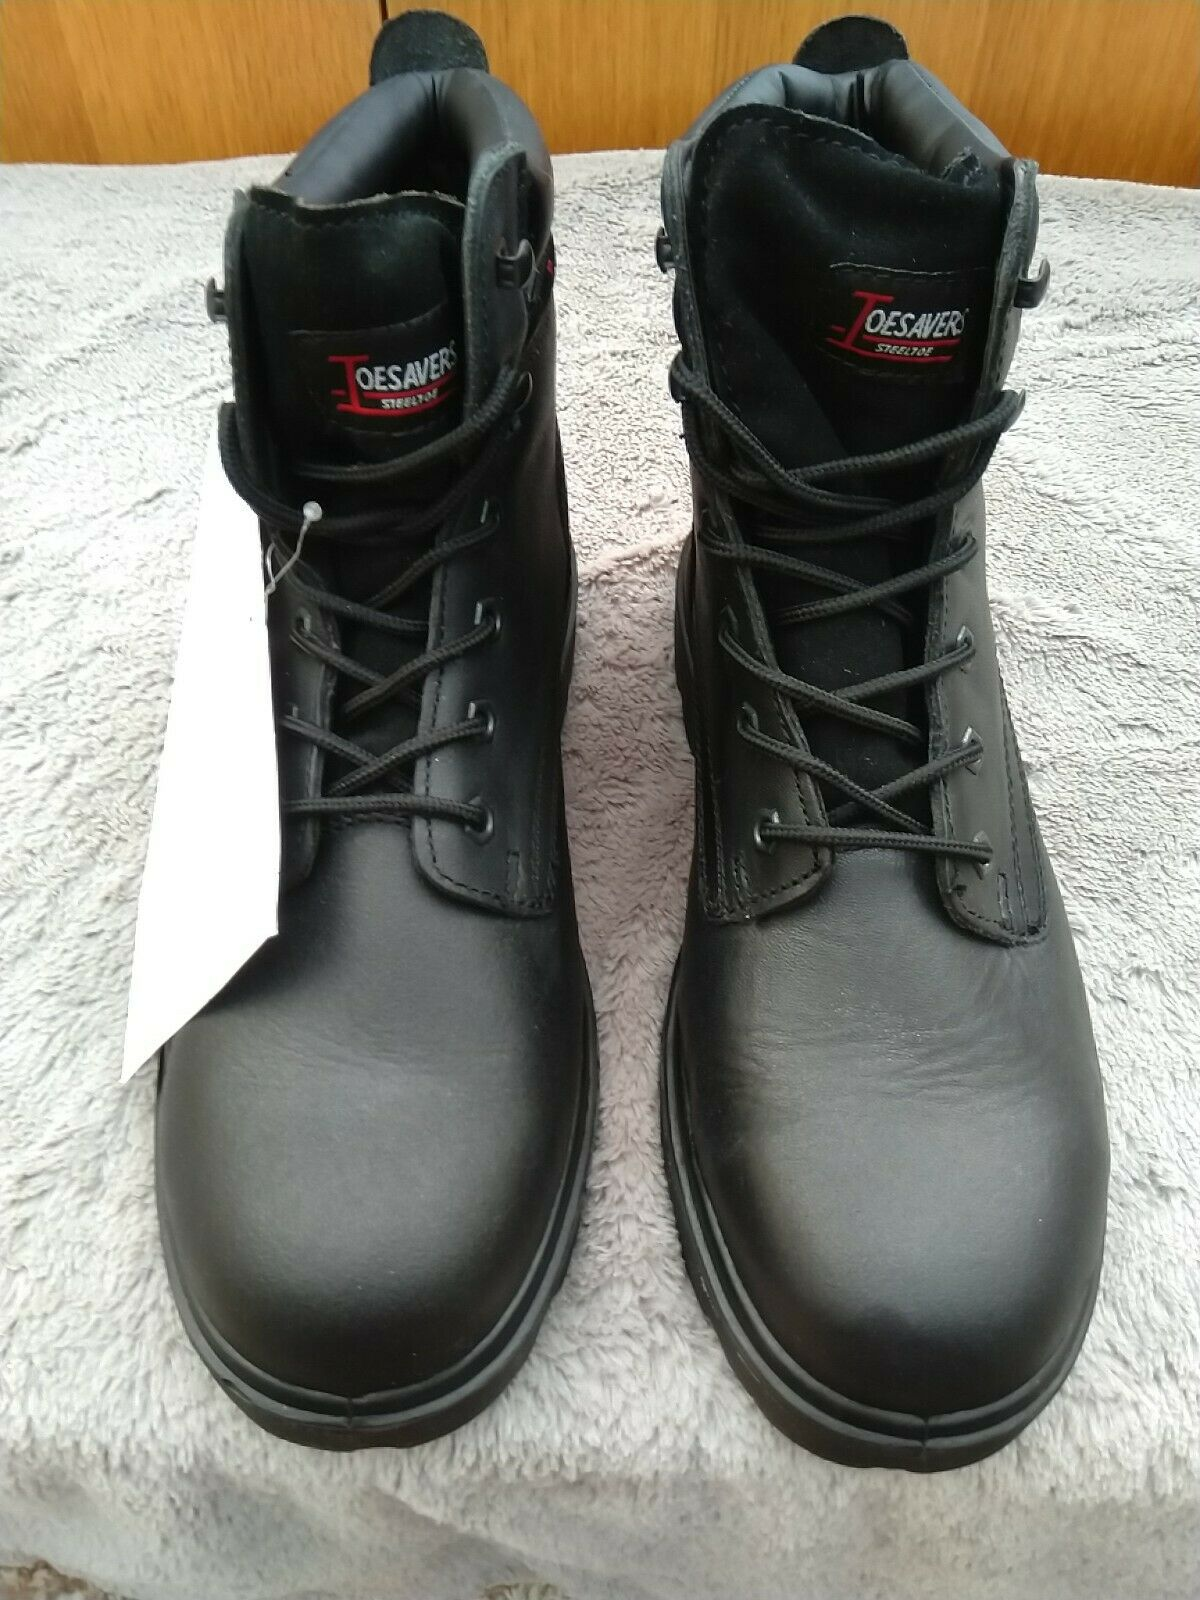 Toesavers Black Safety Work Boots Shoes Leather Steel Toe Cap Size 10/44